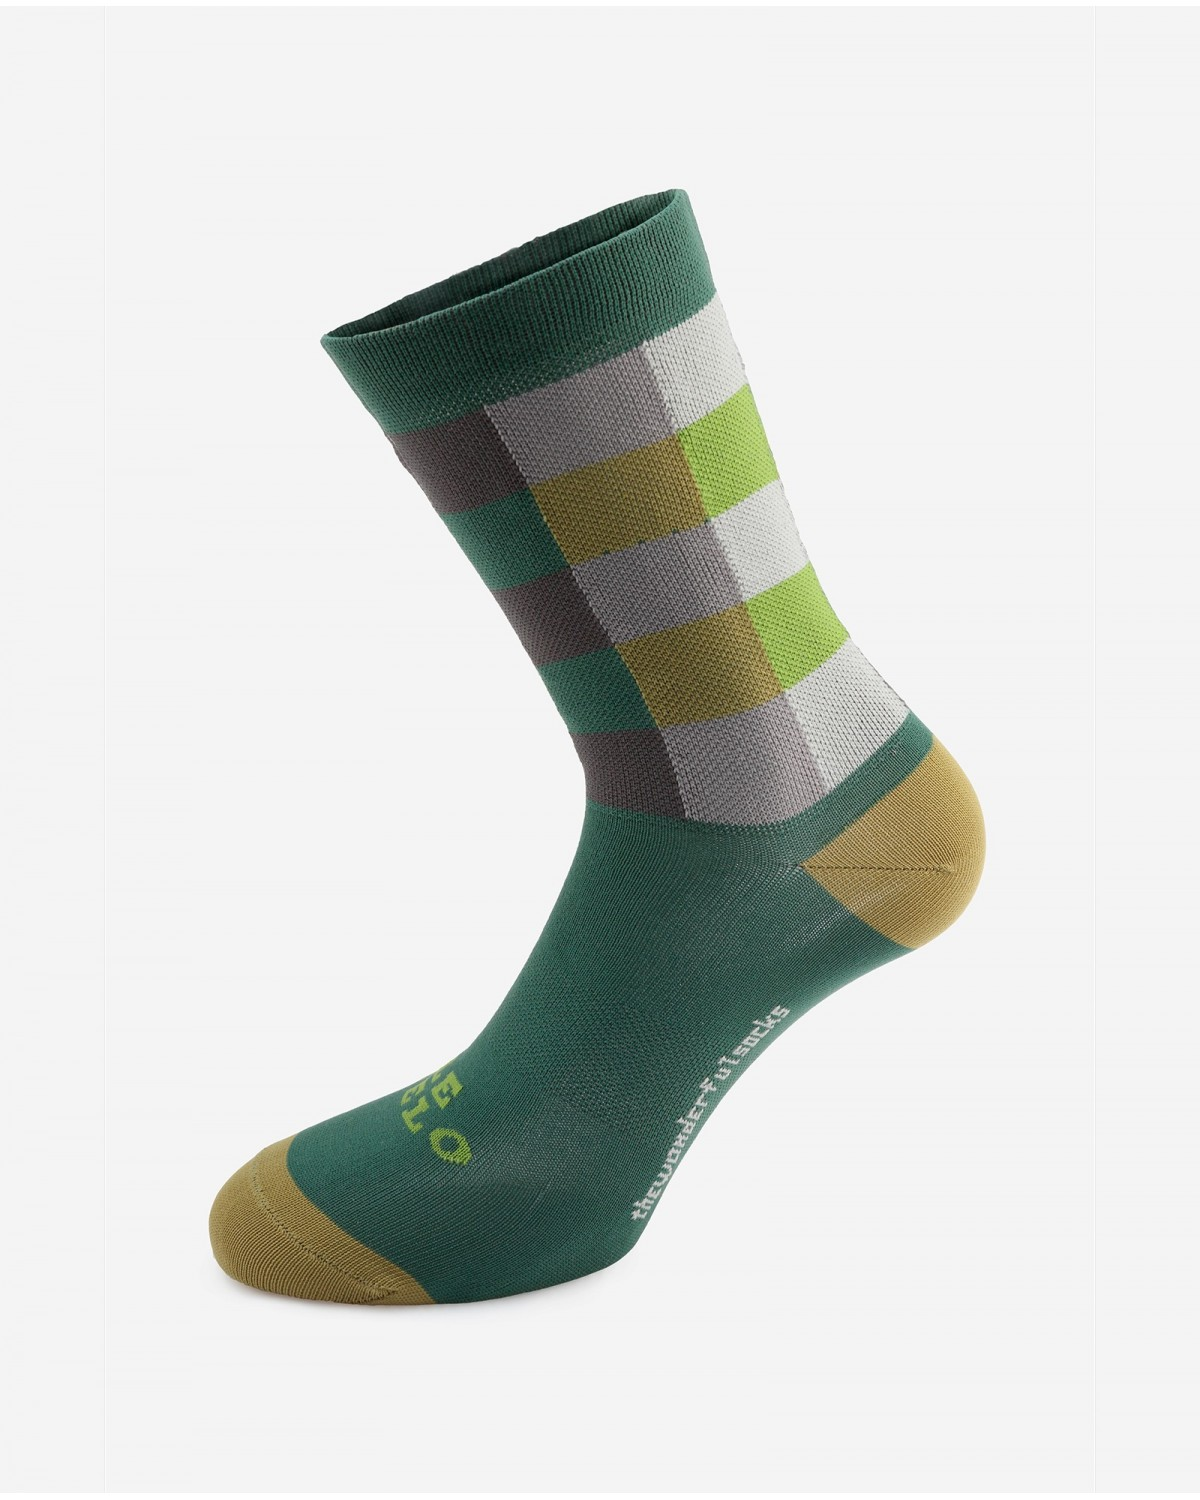 The Wonderful Socks Le Velò Radsocken